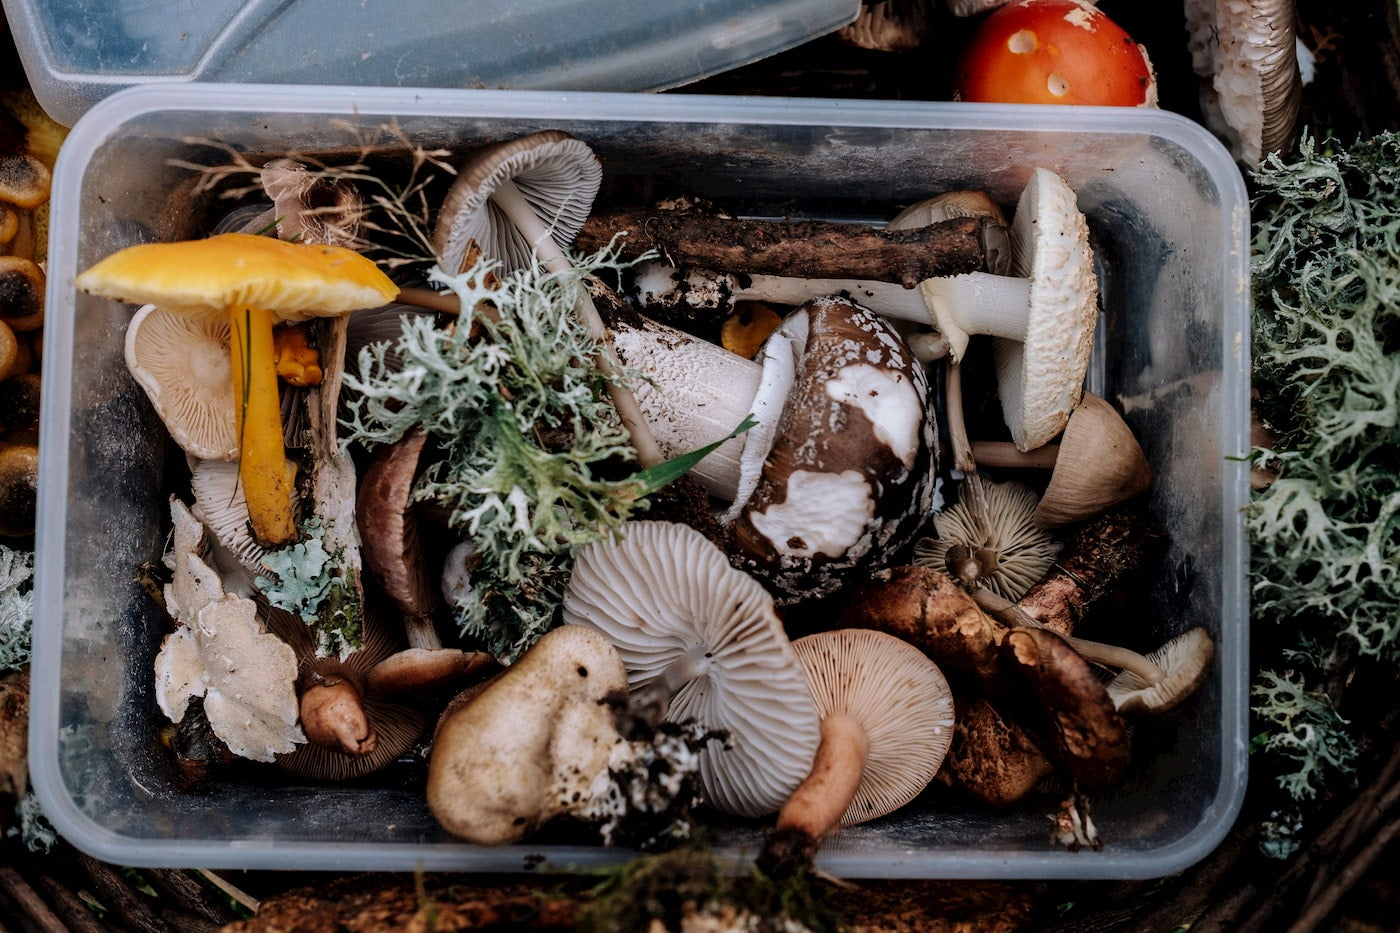 Foraged mushrooms in a container.